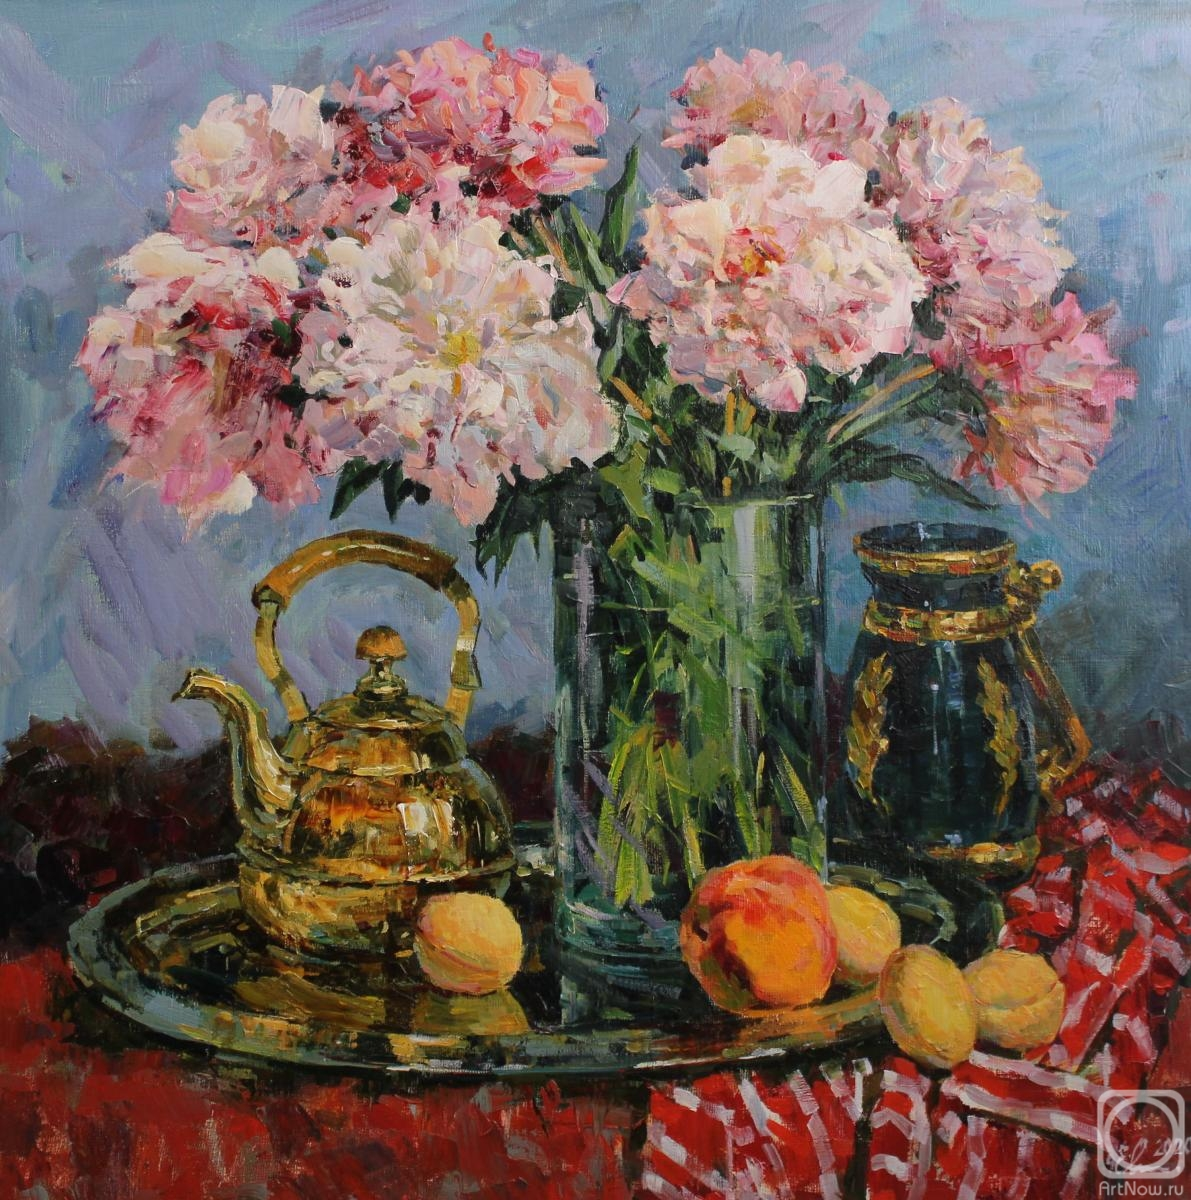 Malykh Evgeny. Peonies and fruits